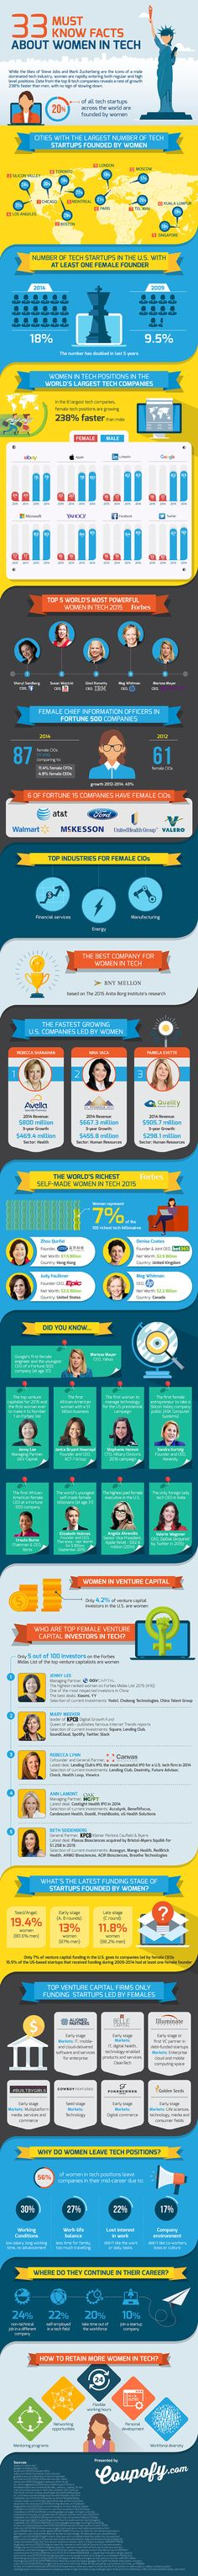 33 Must-Know Facts About Women In Tech #infographic